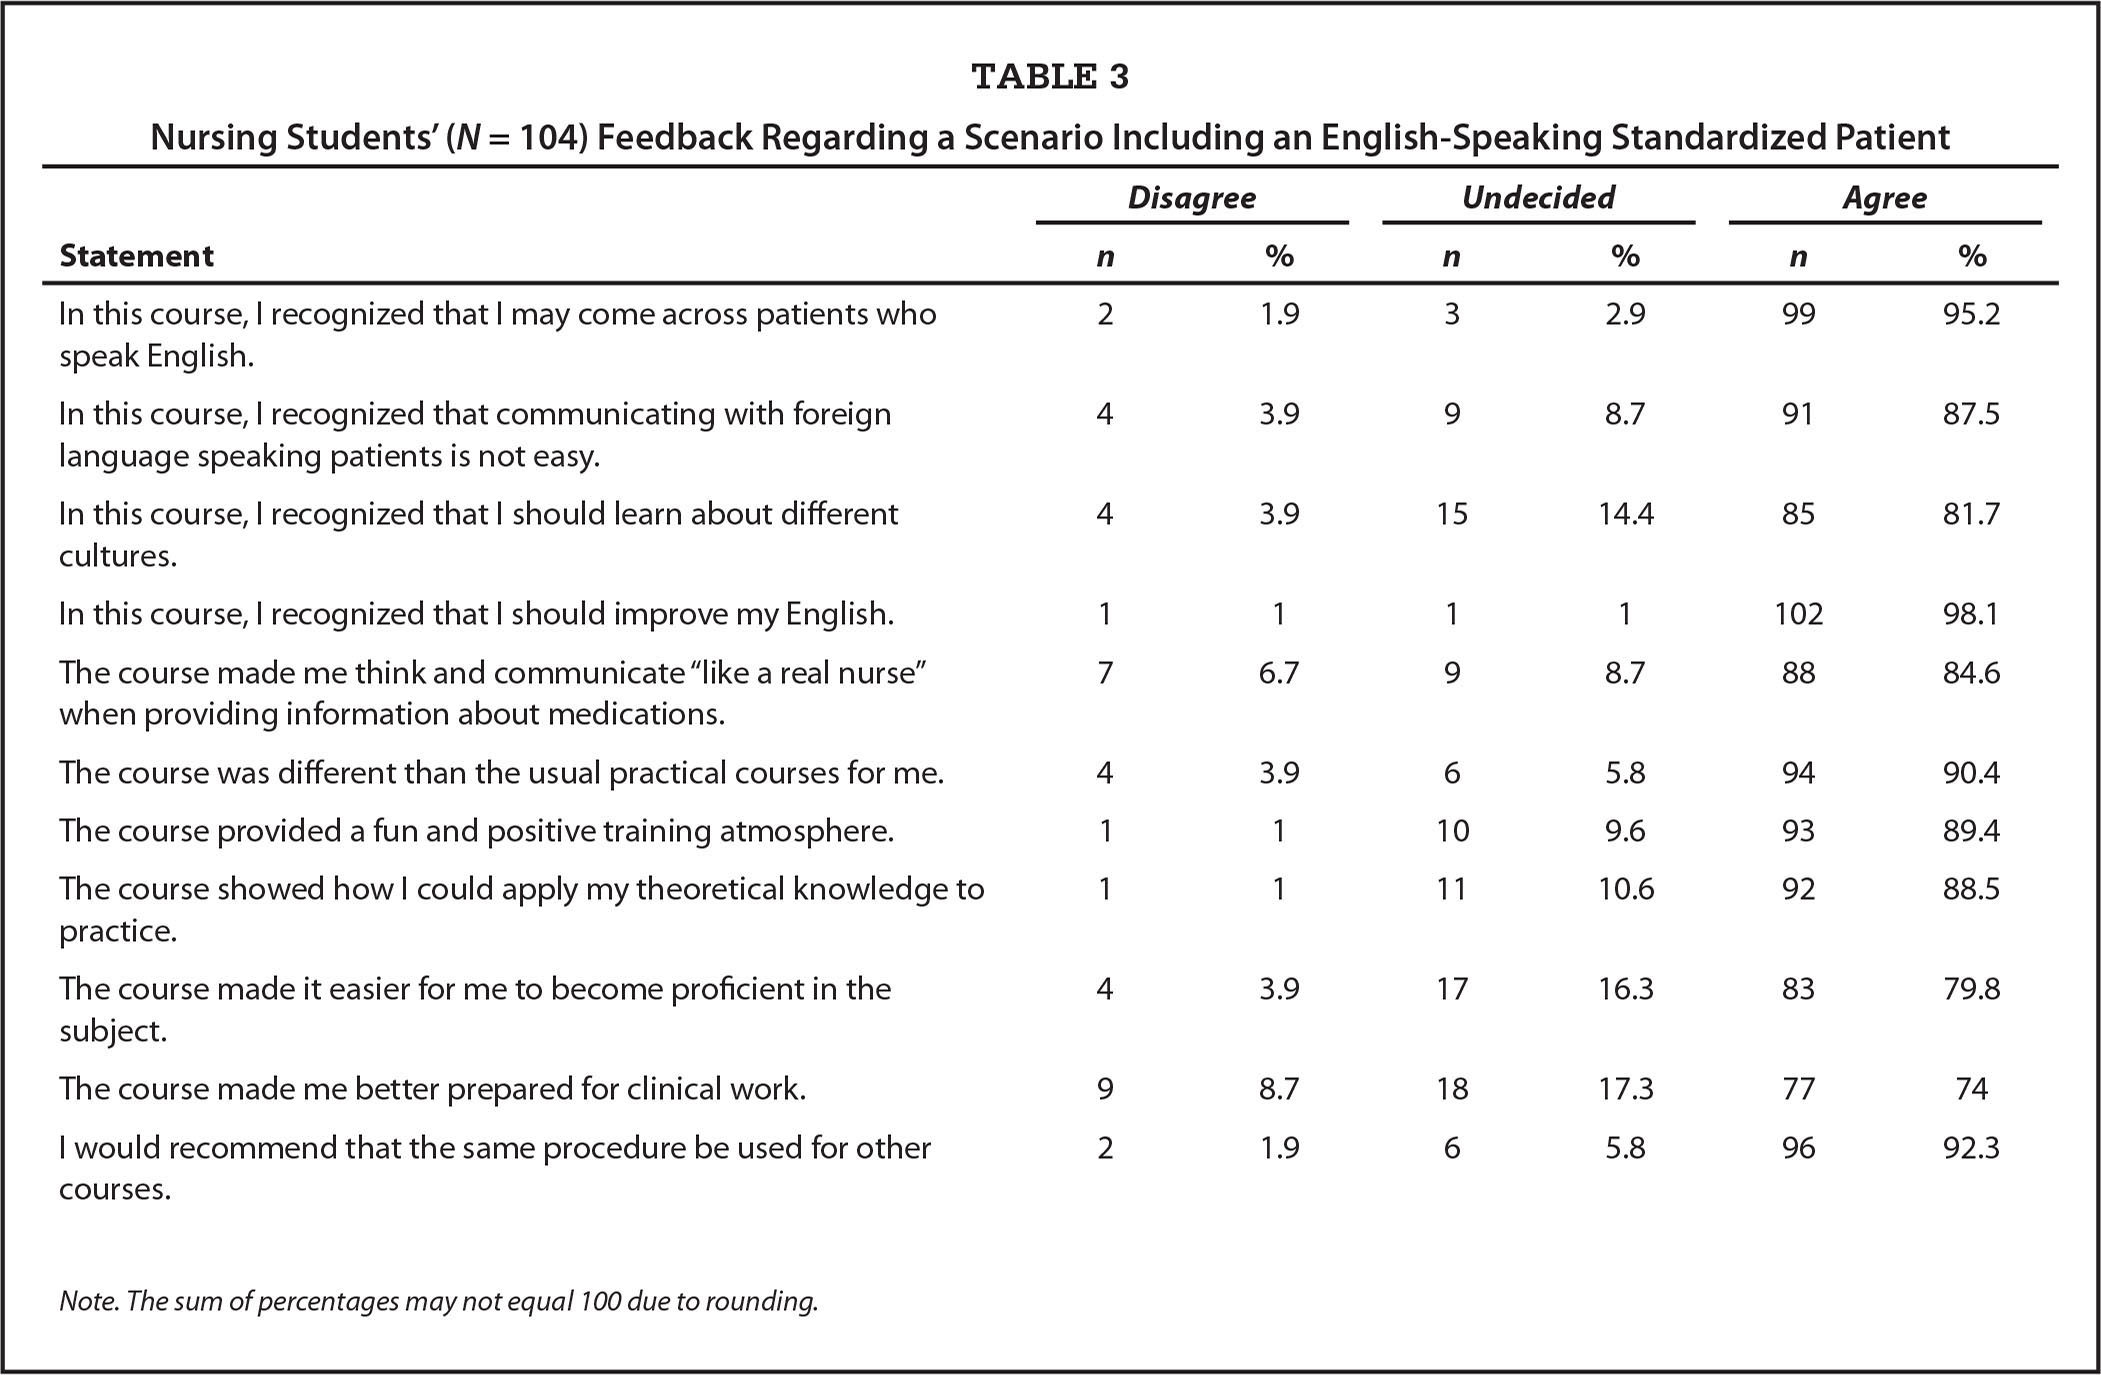 Nursing Students' (N = 104) Feedback Regarding a Scenario Including an English-Speaking Standardized Patient